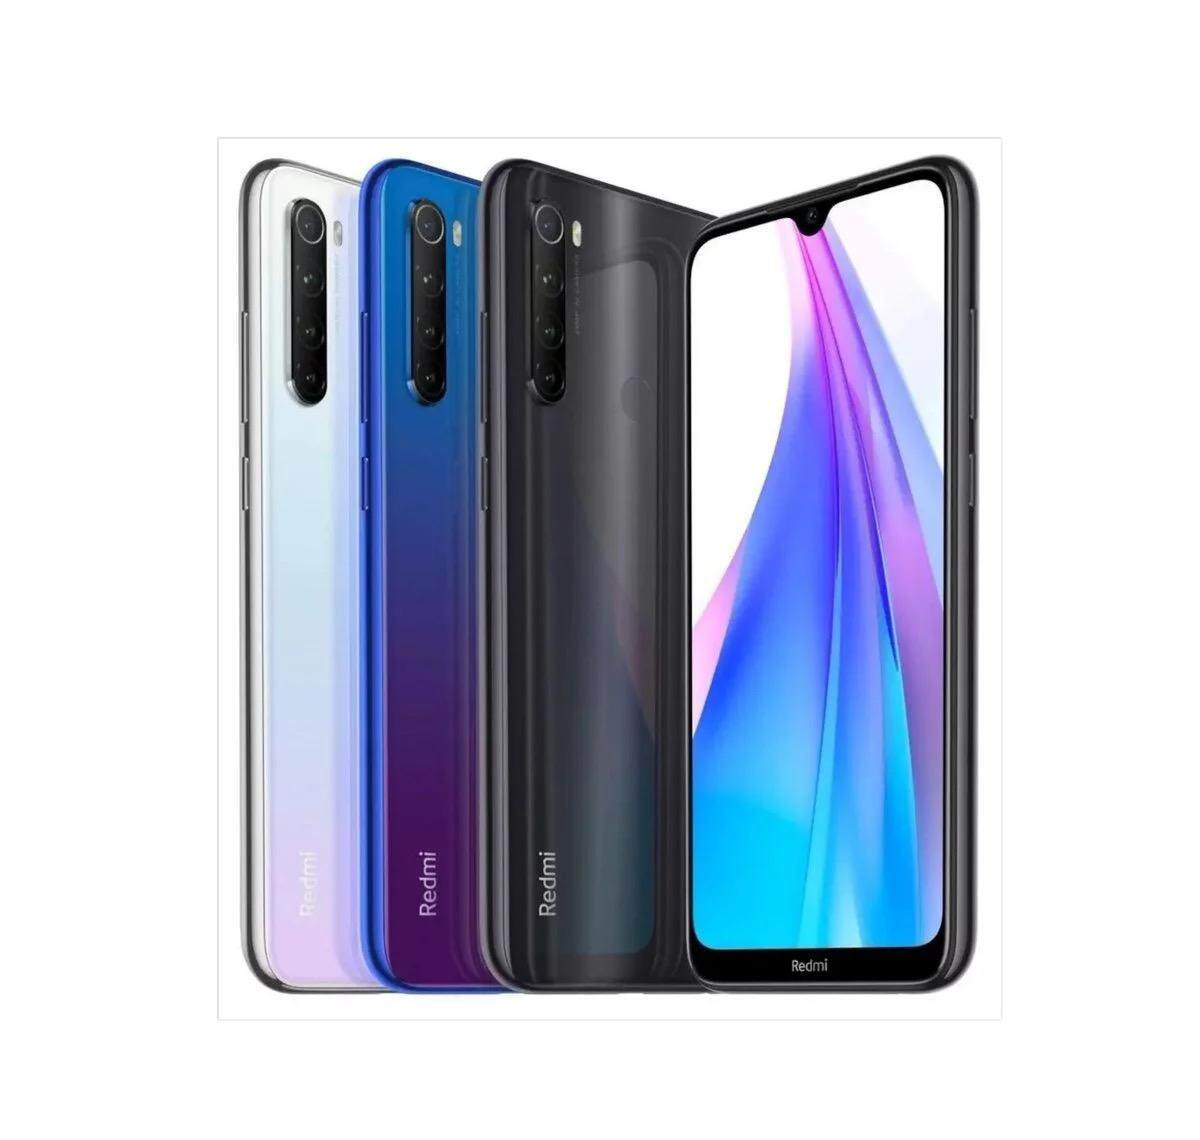 Xiaomi Redmi Note 8T NFC Fast Charge 3+32GB, 4+64GB [Global version] Smartphone Android Handphone